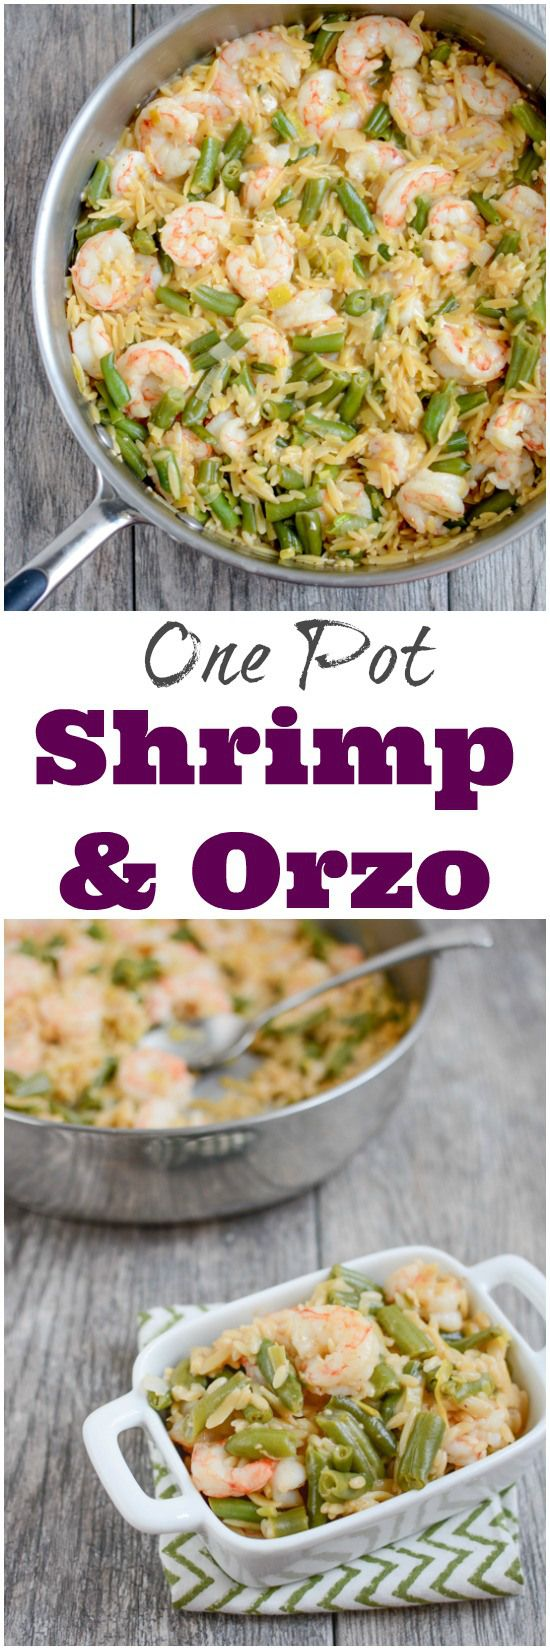 All you need is one pan and 20 minutes to make this quick and easy One Pot Shrimp and Orzo dinner recipe. It's full of flavor and cleanup is a breeze!